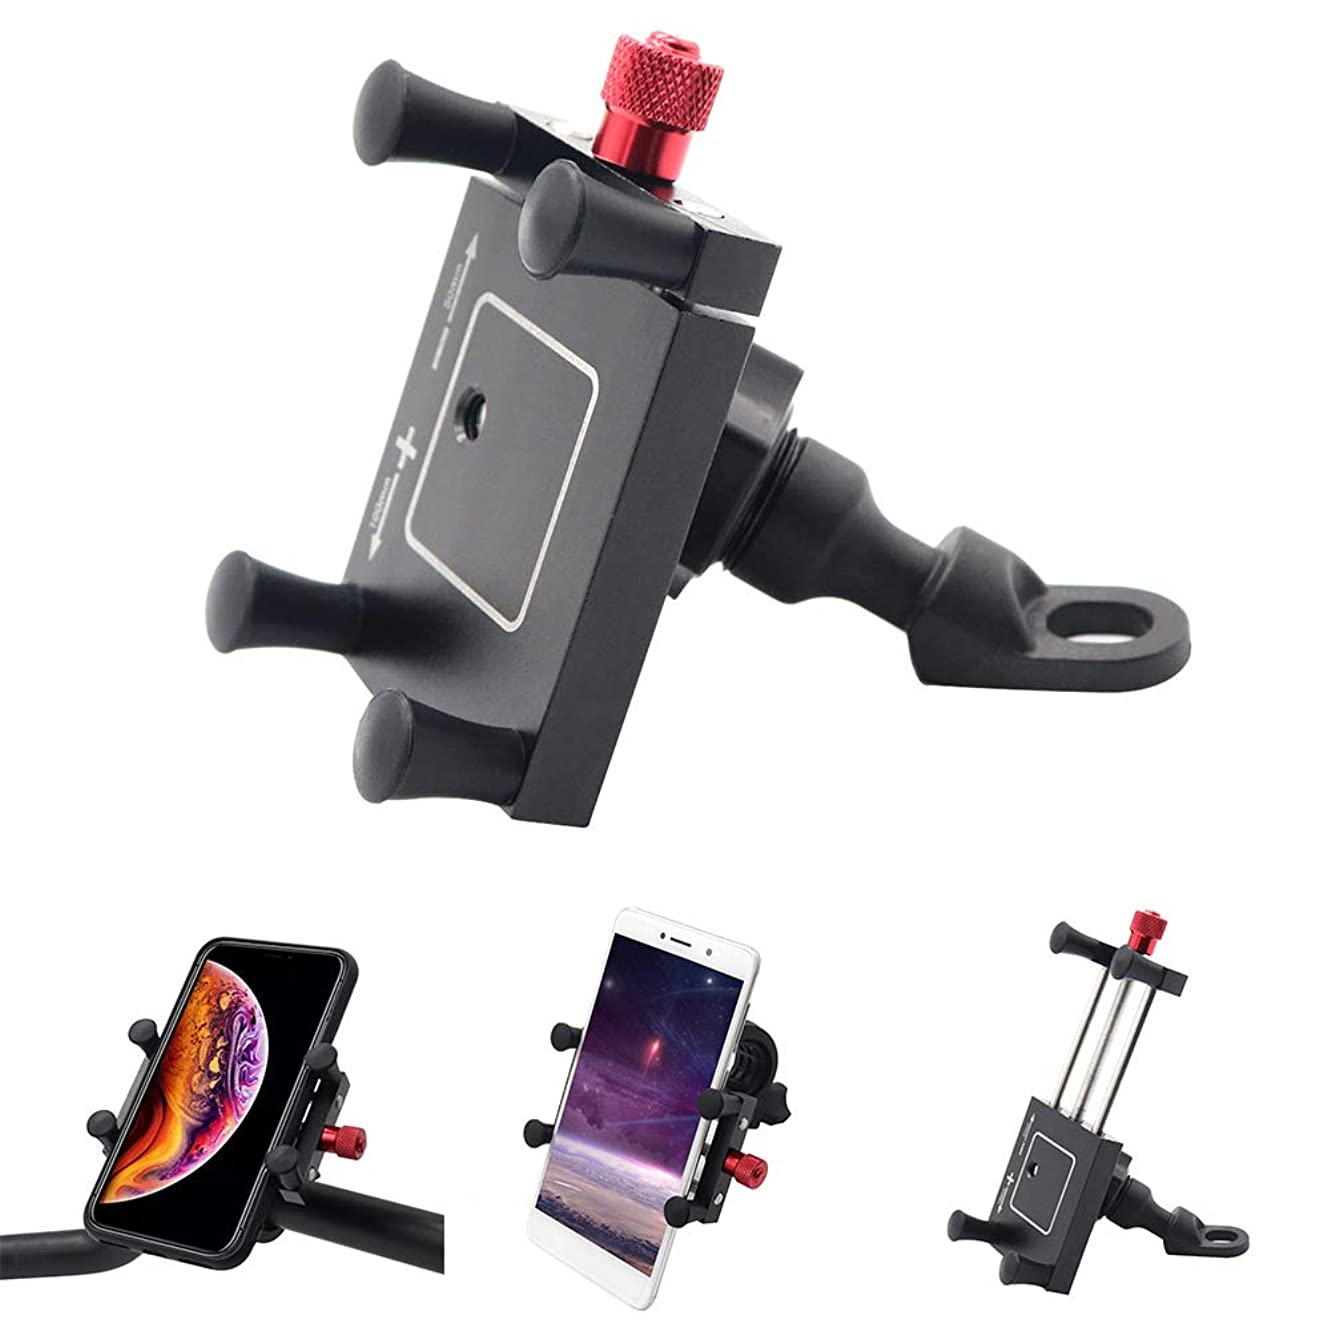 dulawei3 Motorcycle Bicycle Bike Aluminum Alloy 360 Degrees Rotatable Phone GPS Bracket Holder Stand Mount for iPhone Xs MAX XR X 8/7/6/6s Plus Samsung Galaxy S5/S6/S7/S8/S9 Note 9 8 Huawei LG Black